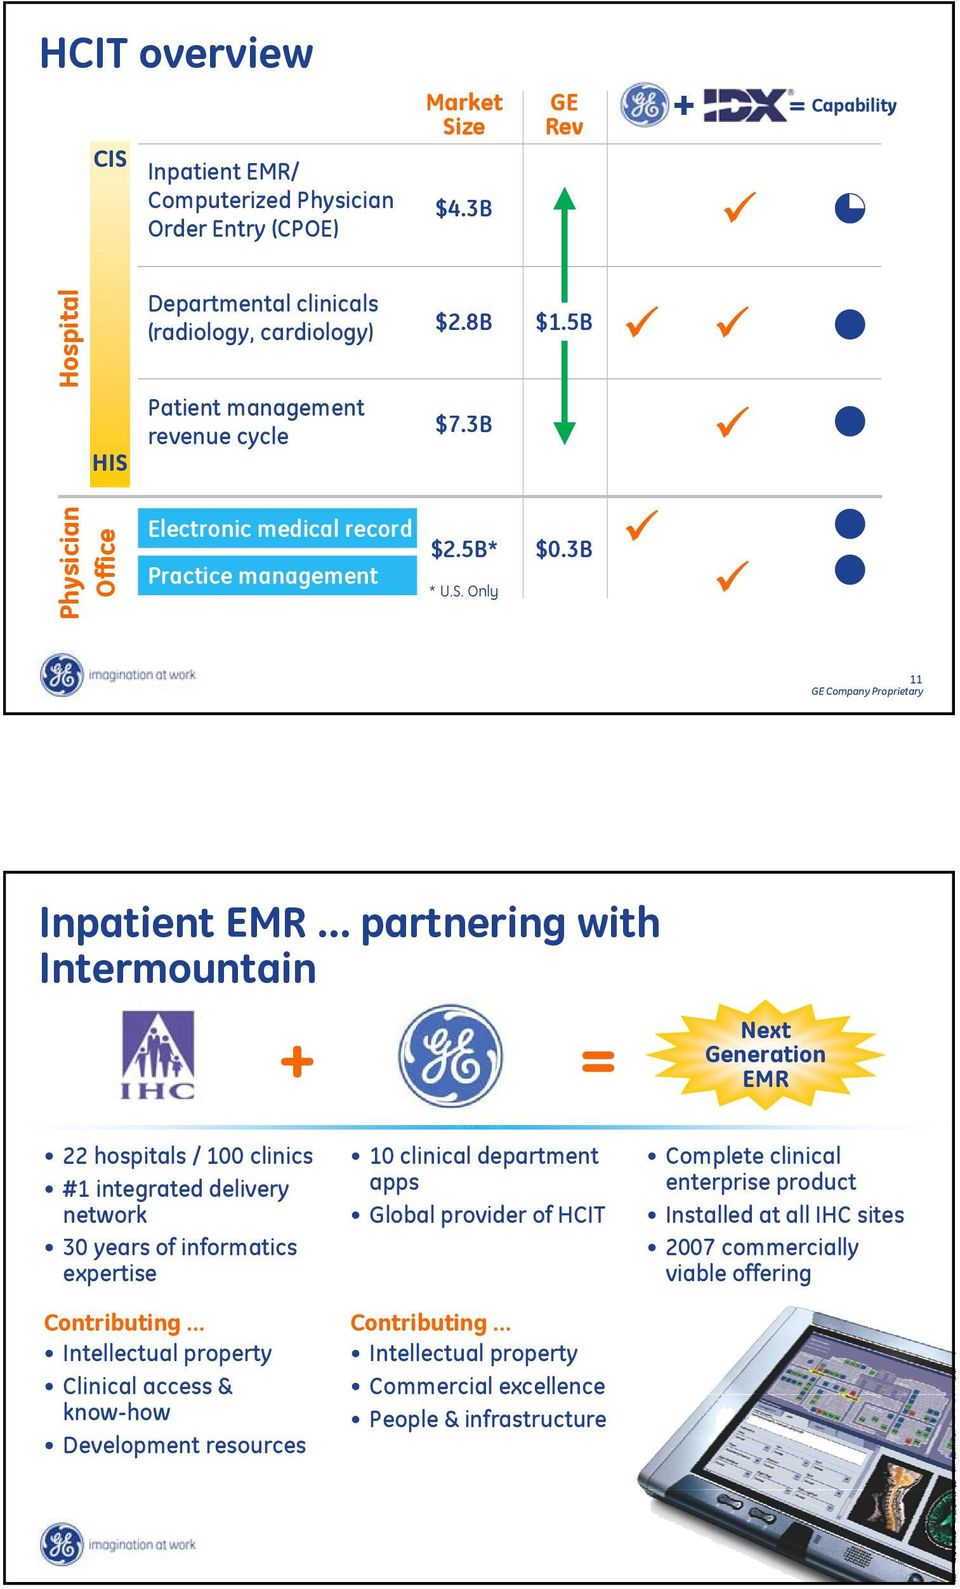 Only 11 Inpatient EMR partnering with Intermountain + = 22 hospitals / 100 clinics #1 integrated delivery network 30 years of informatics expertise 10 clinical department apps Global provider of